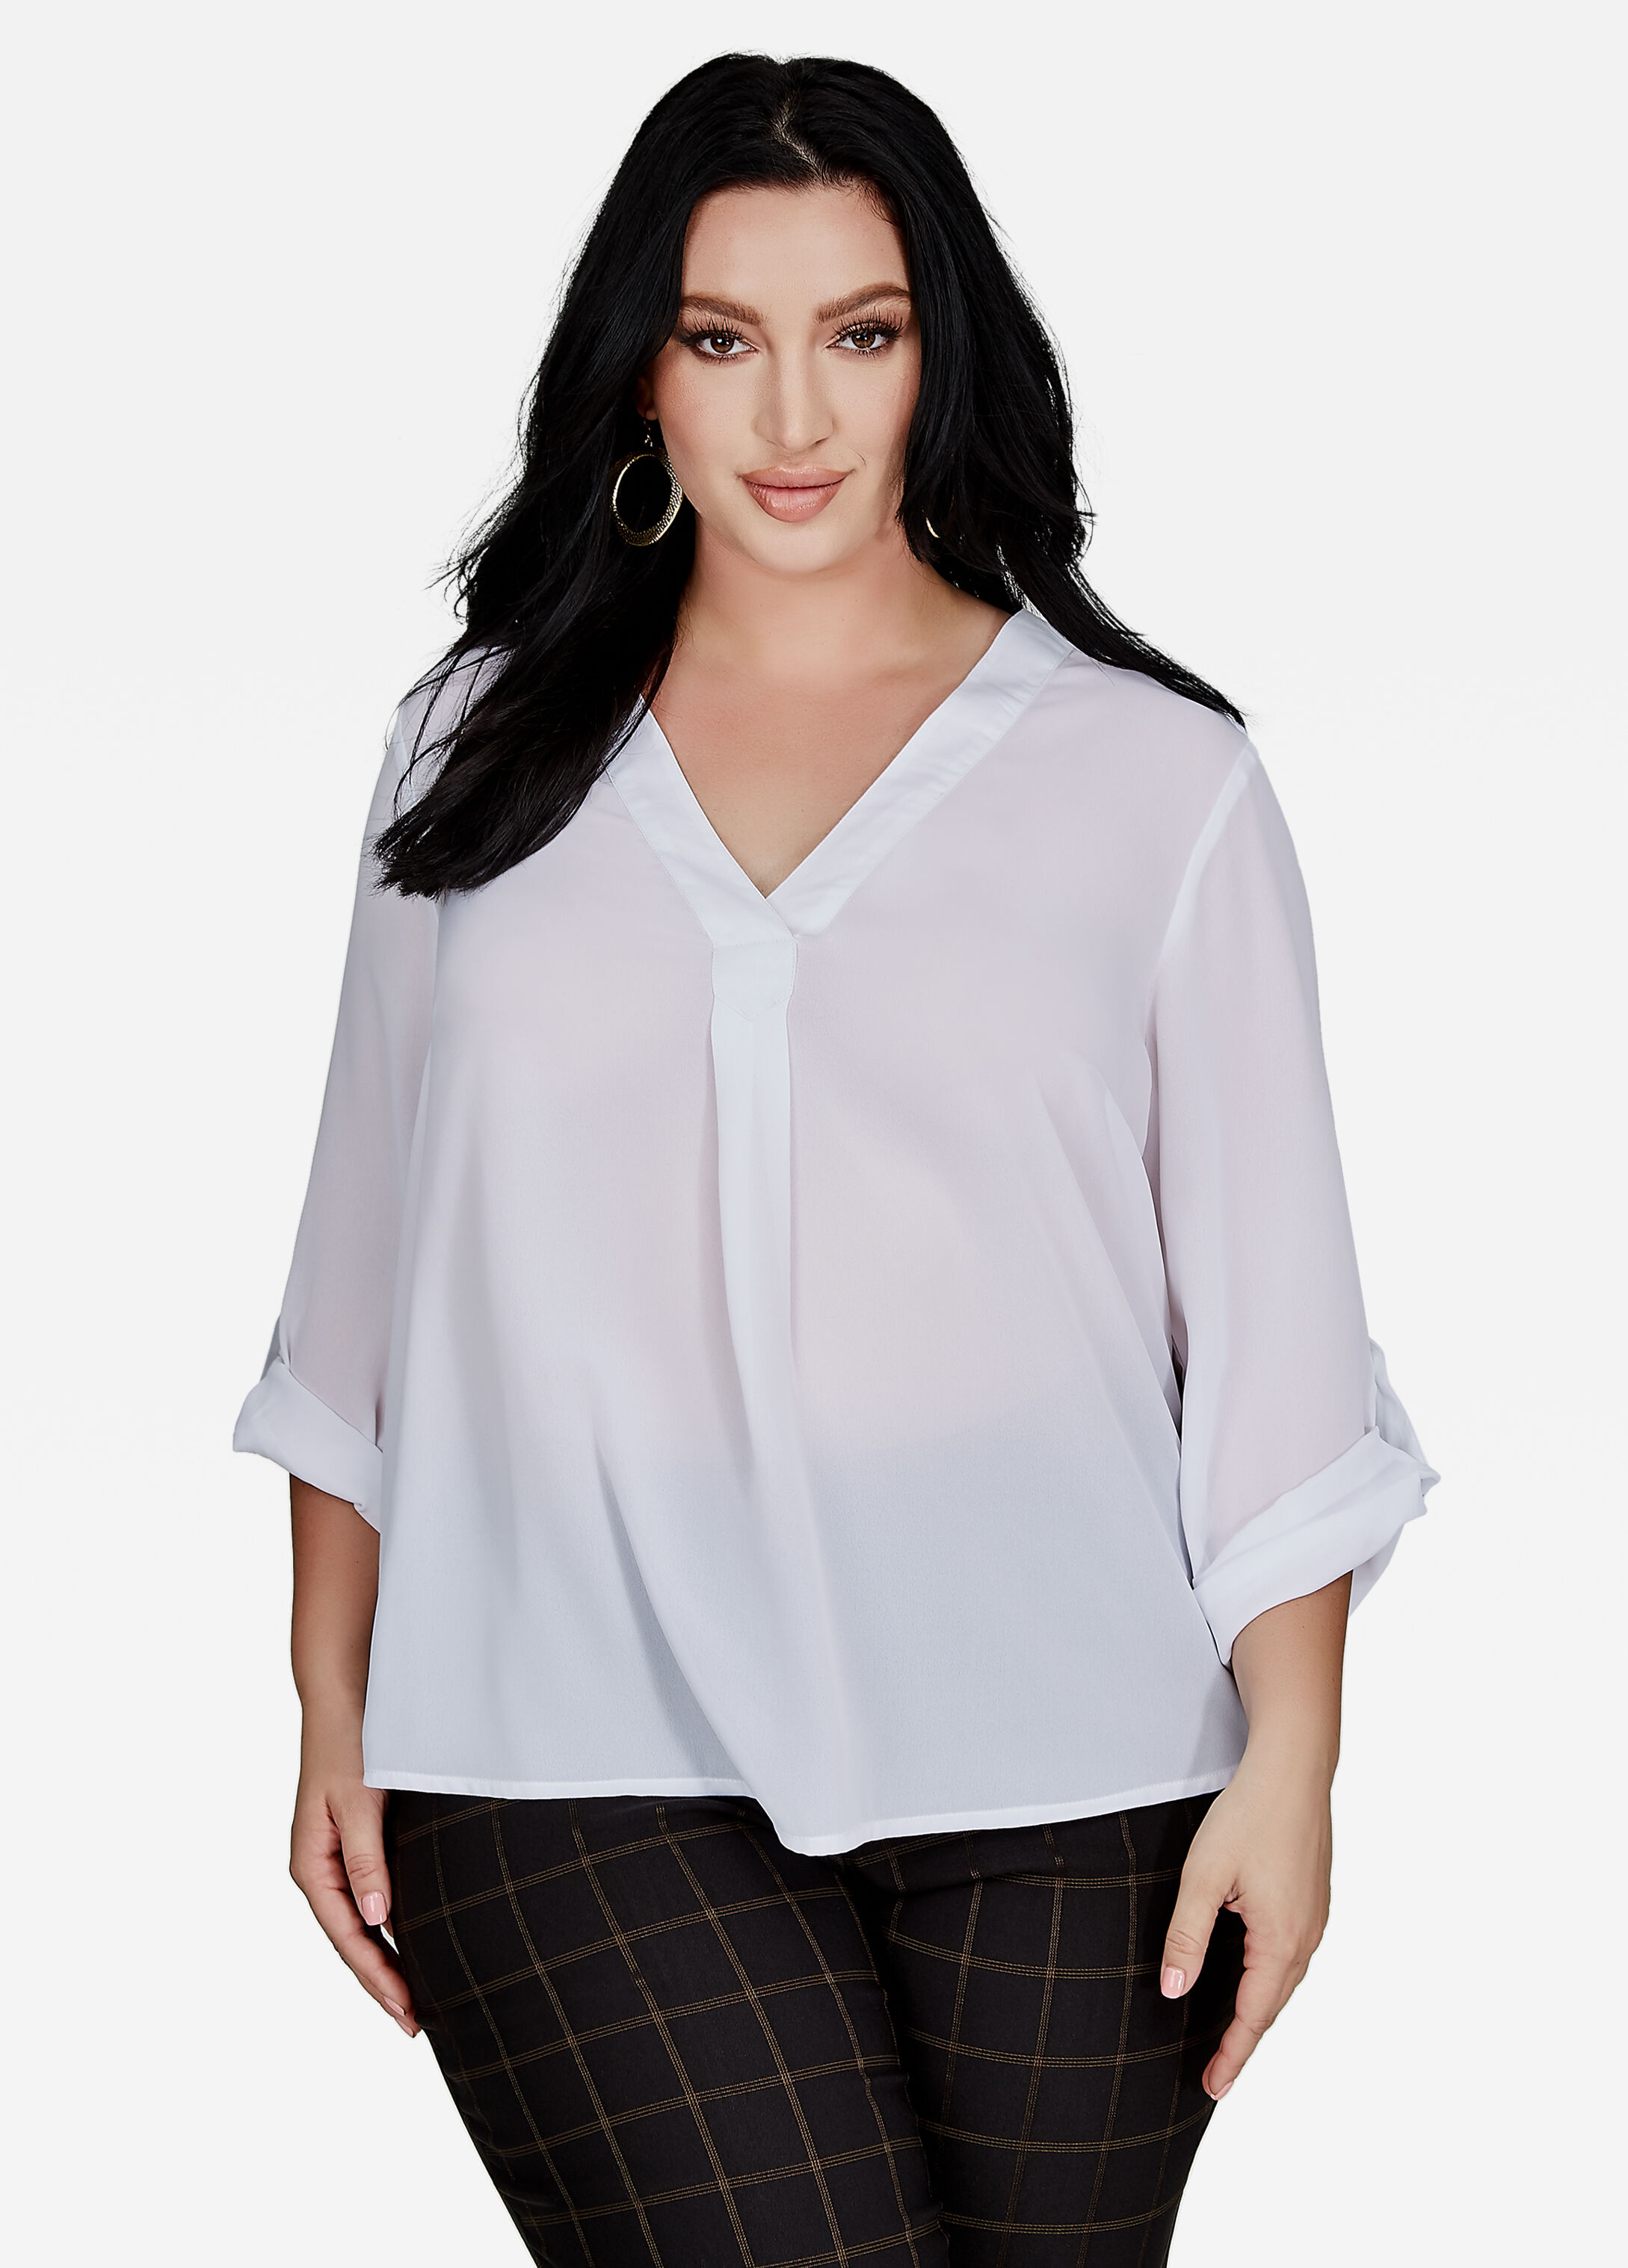 Find great deals on eBay for v neck blouse. Shop with confidence.